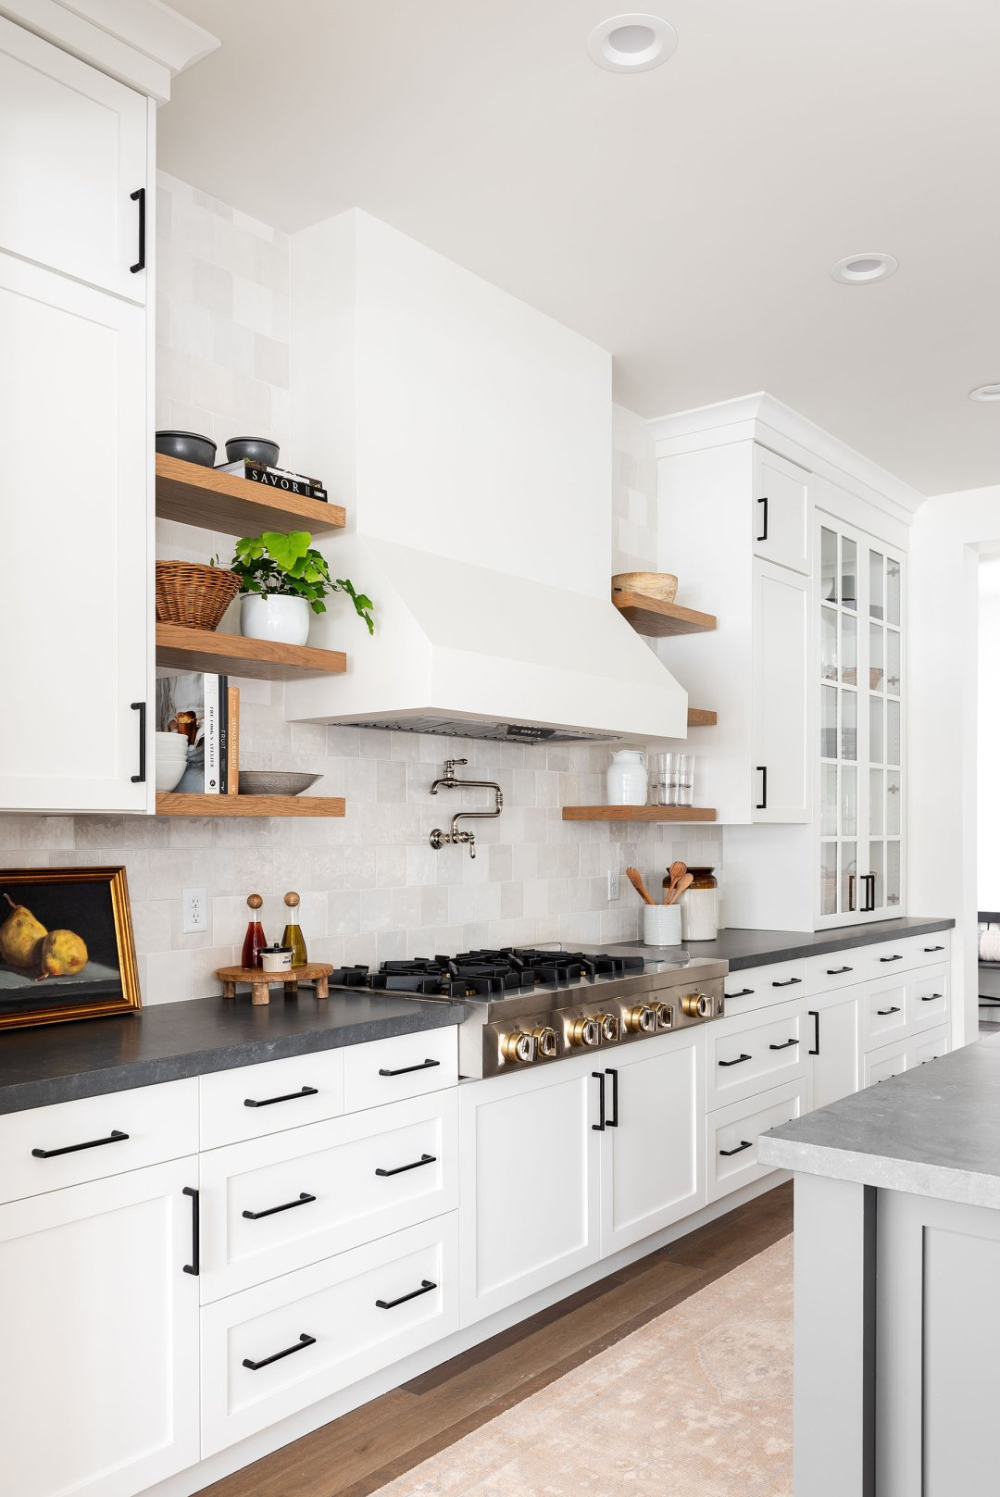 Black & White Transitional Kitchen in 2020 Transitional